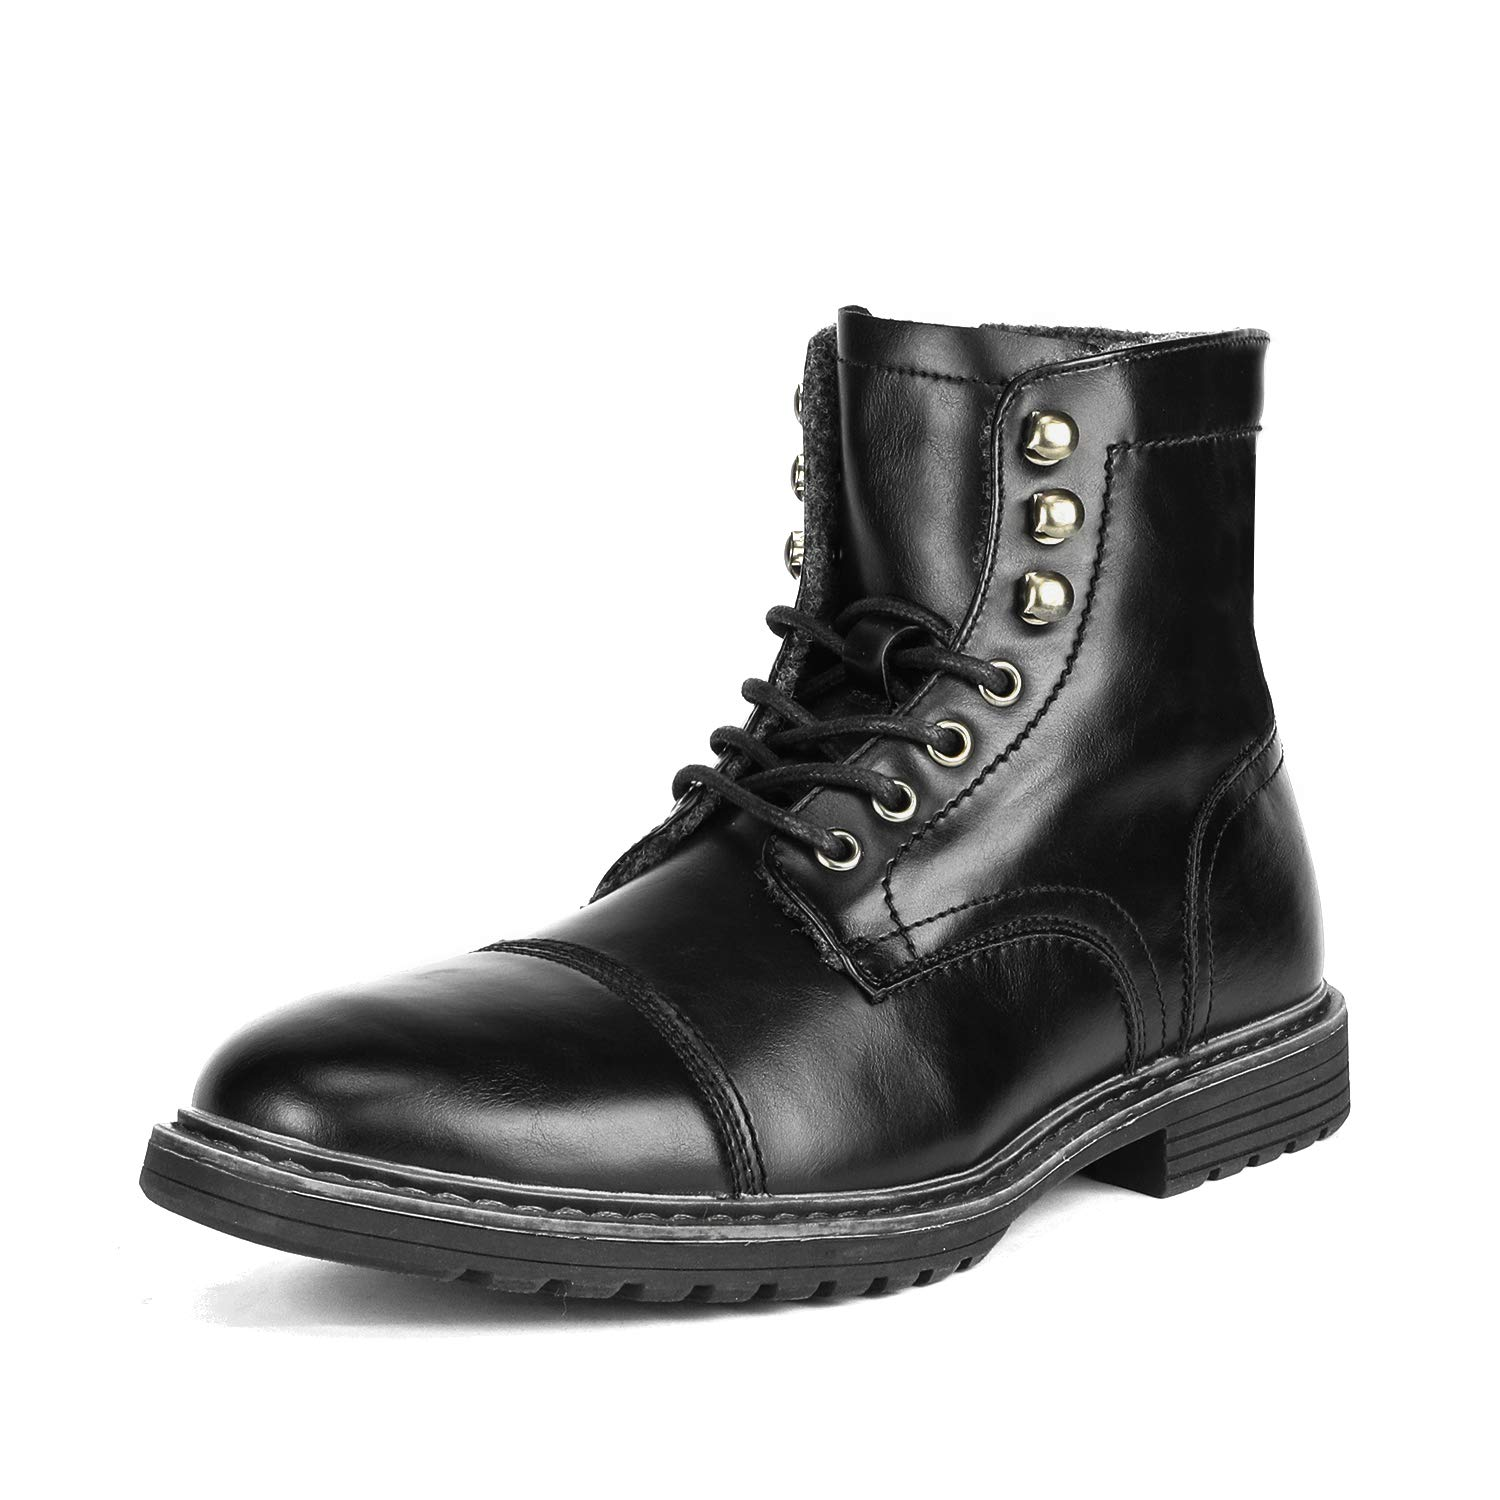 Bruno Marc Men's Philly_11 Black Dress Combat Motorcycle Oxfords Boots Size 10.5 M US